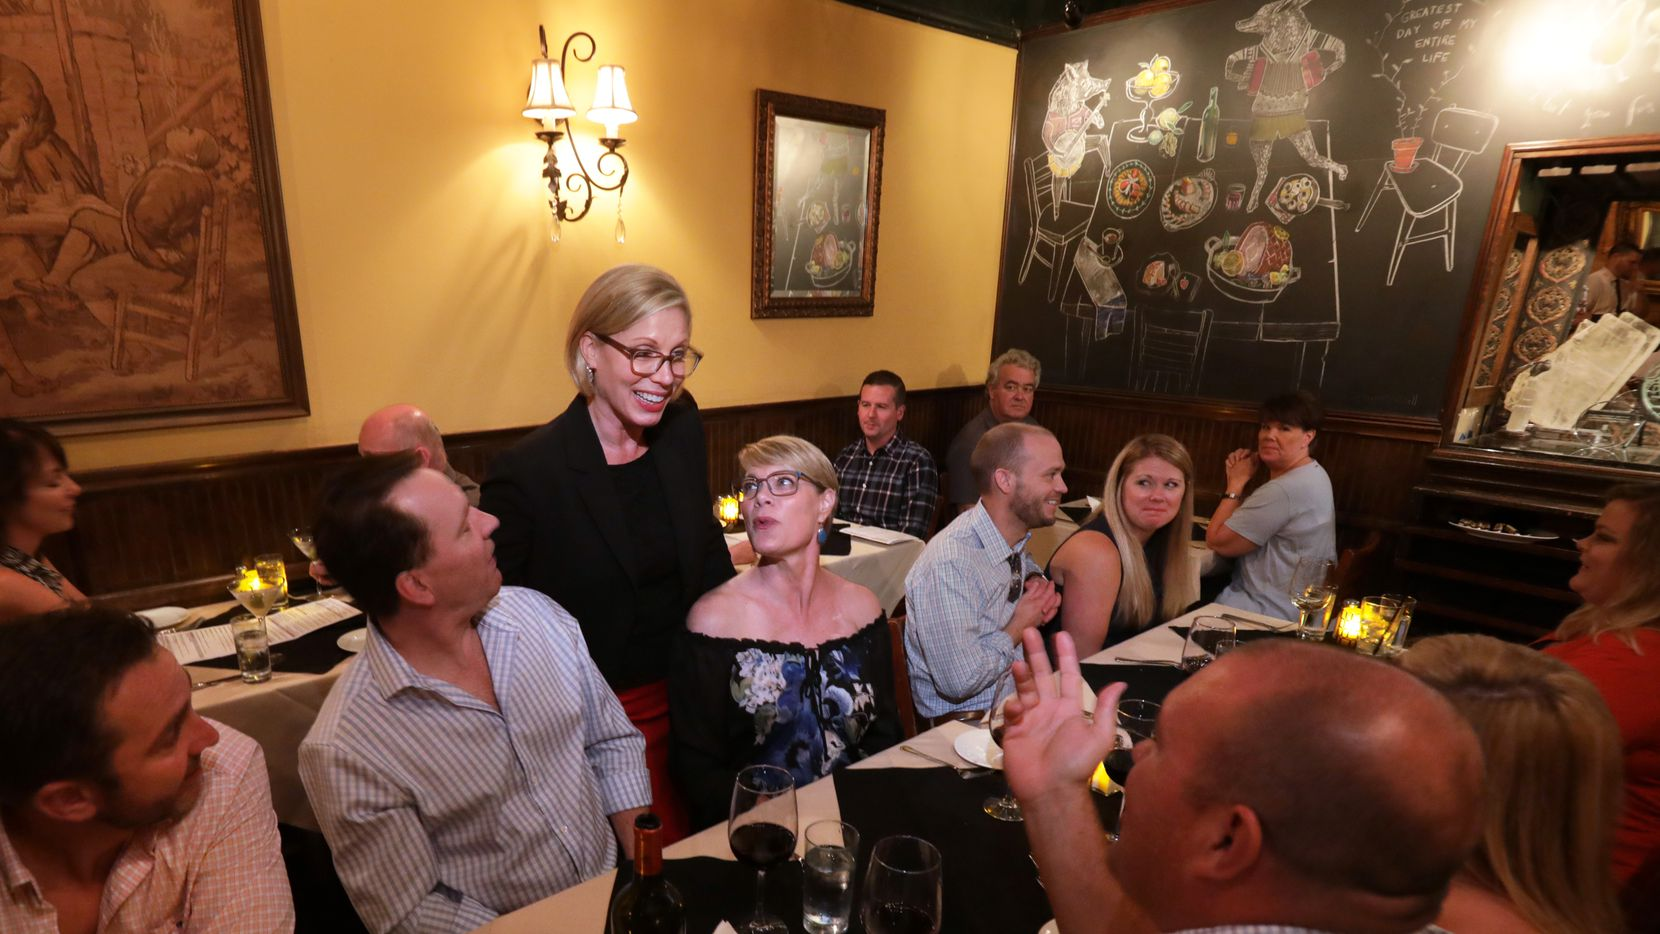 Owner Courtney Luscher checks in with diners during the busy last days of the Grape.